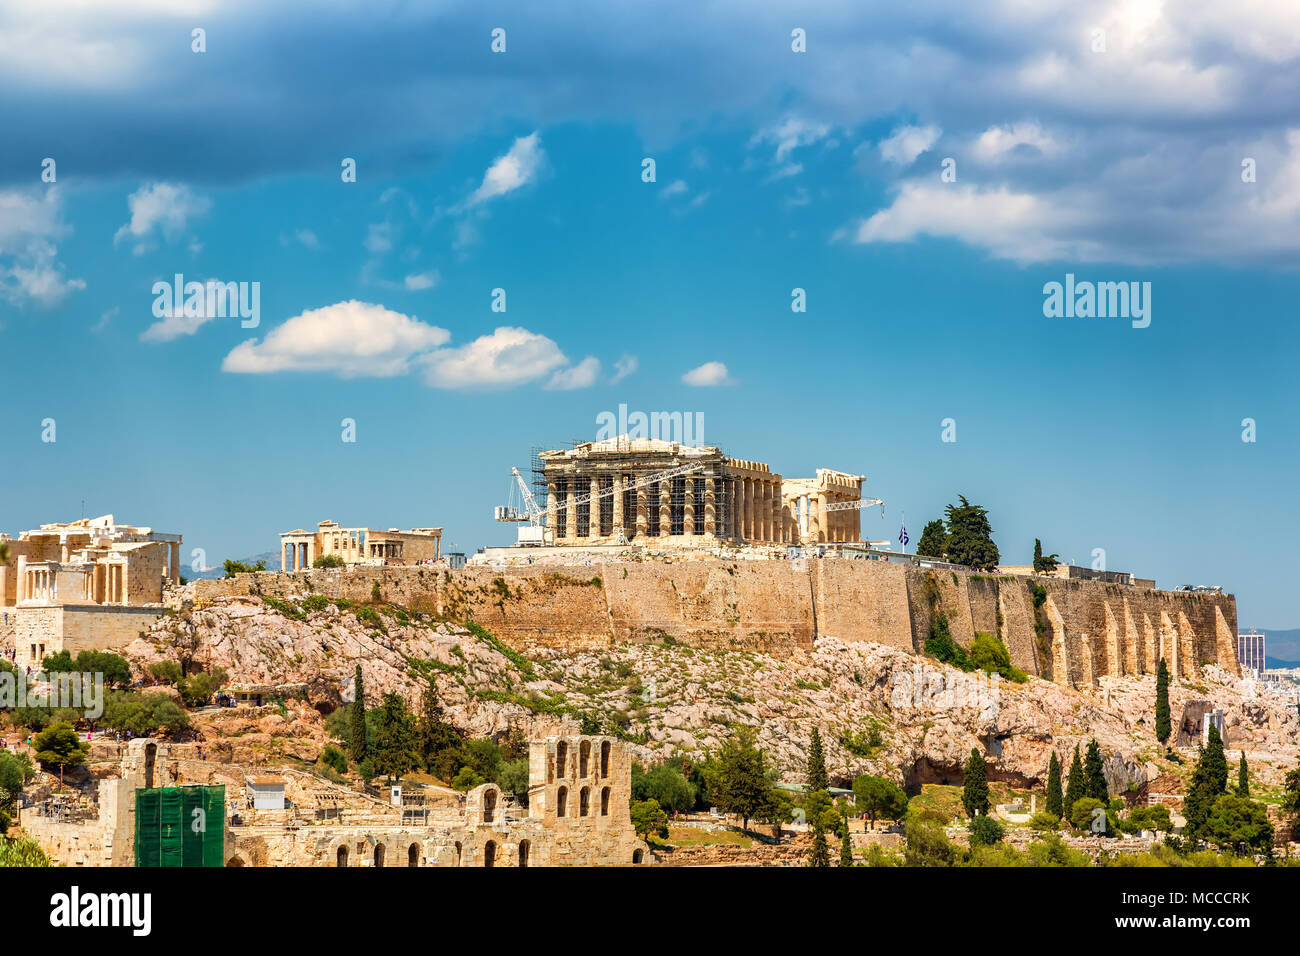 Acropolis of Athens, Greece - Stock Image